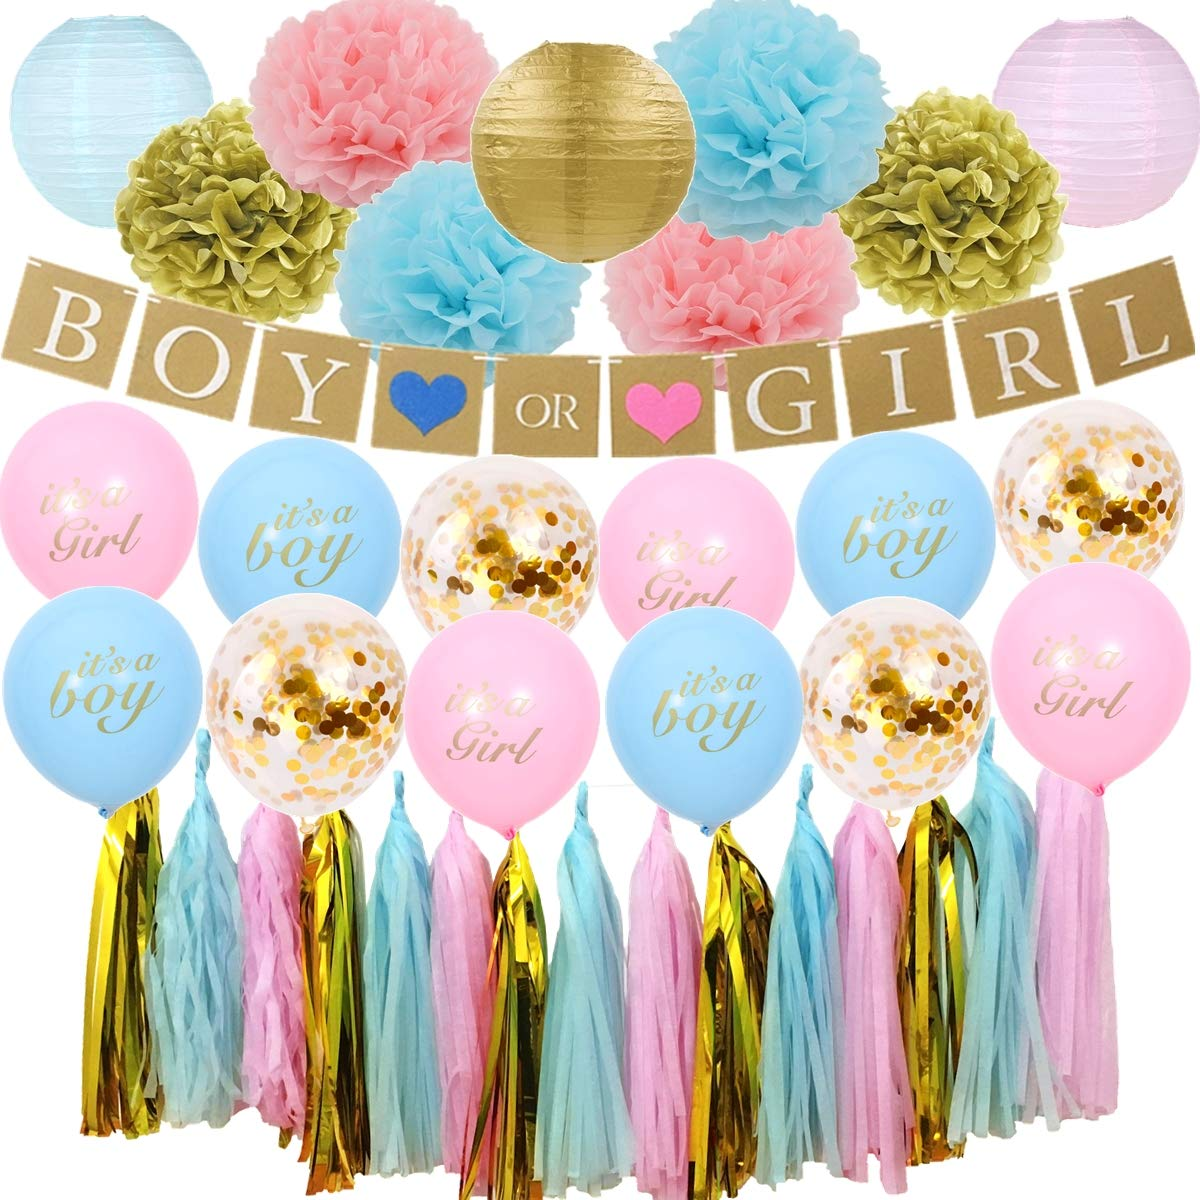 46PCS BOY or Girl Gender Reveal Baby Shower Party Decoration Set - BOY or Girl Banner, Tissue Paper Pom Pom, Paper Lantern, Tassel Garland, Its a boy/Girl Latex Balloon, Confetti Balloon